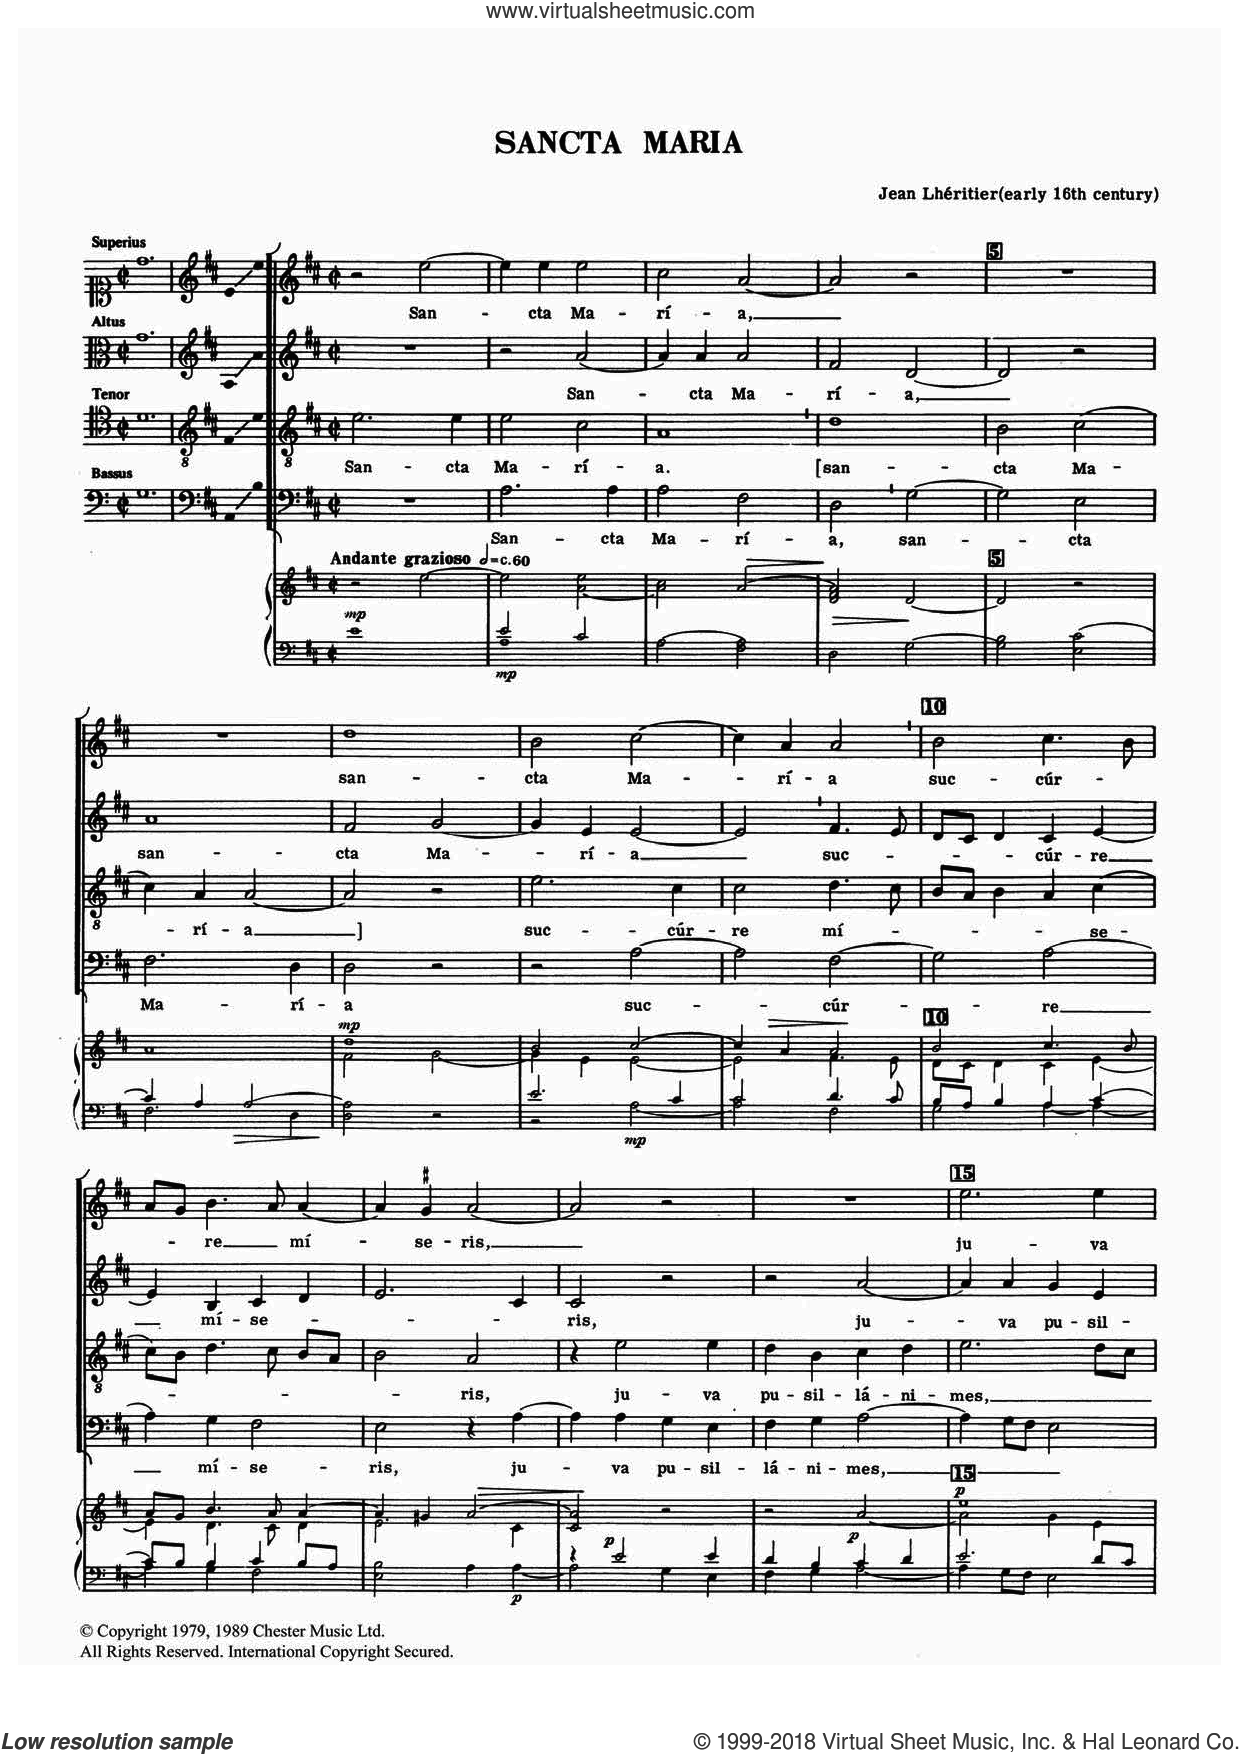 Sancta Maria sheet music for choir by Jean Lheritier, classical score, intermediate. Score Image Preview.